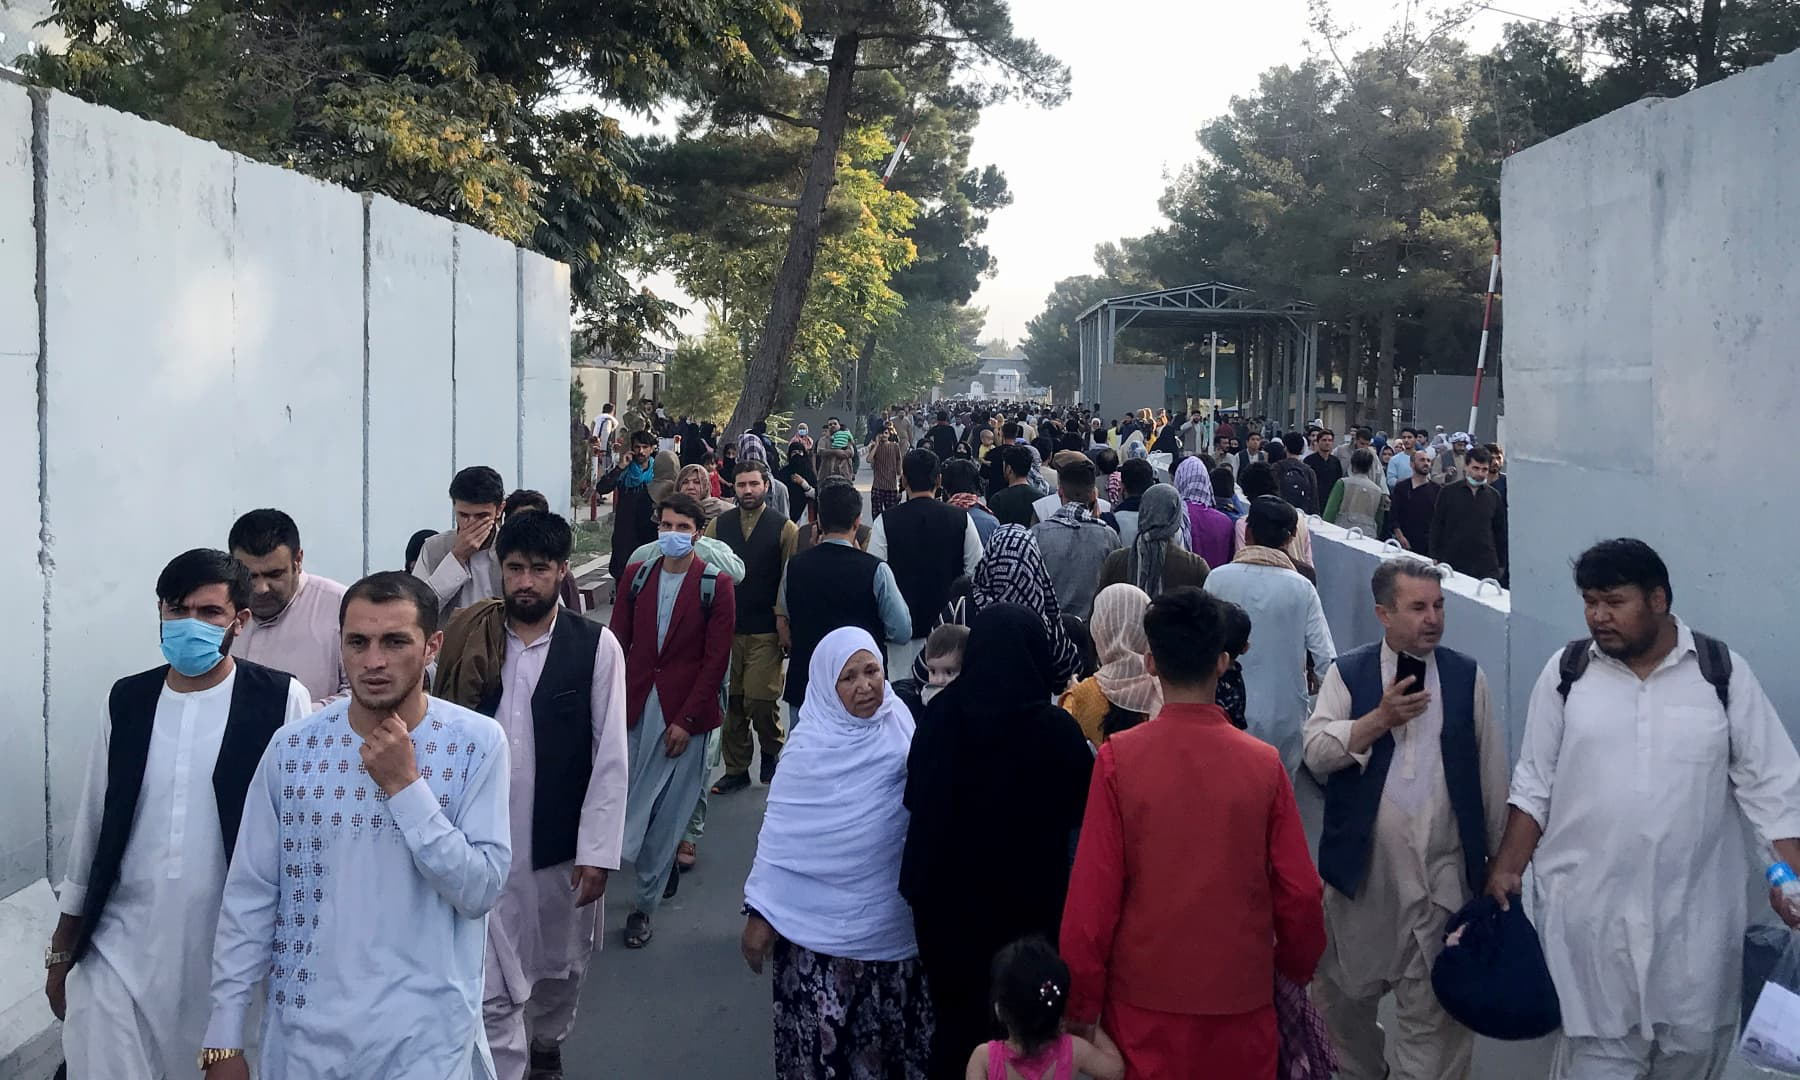 People walk at the entrance gate of Hamid Karzai International Airport in Kabul, Afghanistan on August 16, 2021. — Reuters